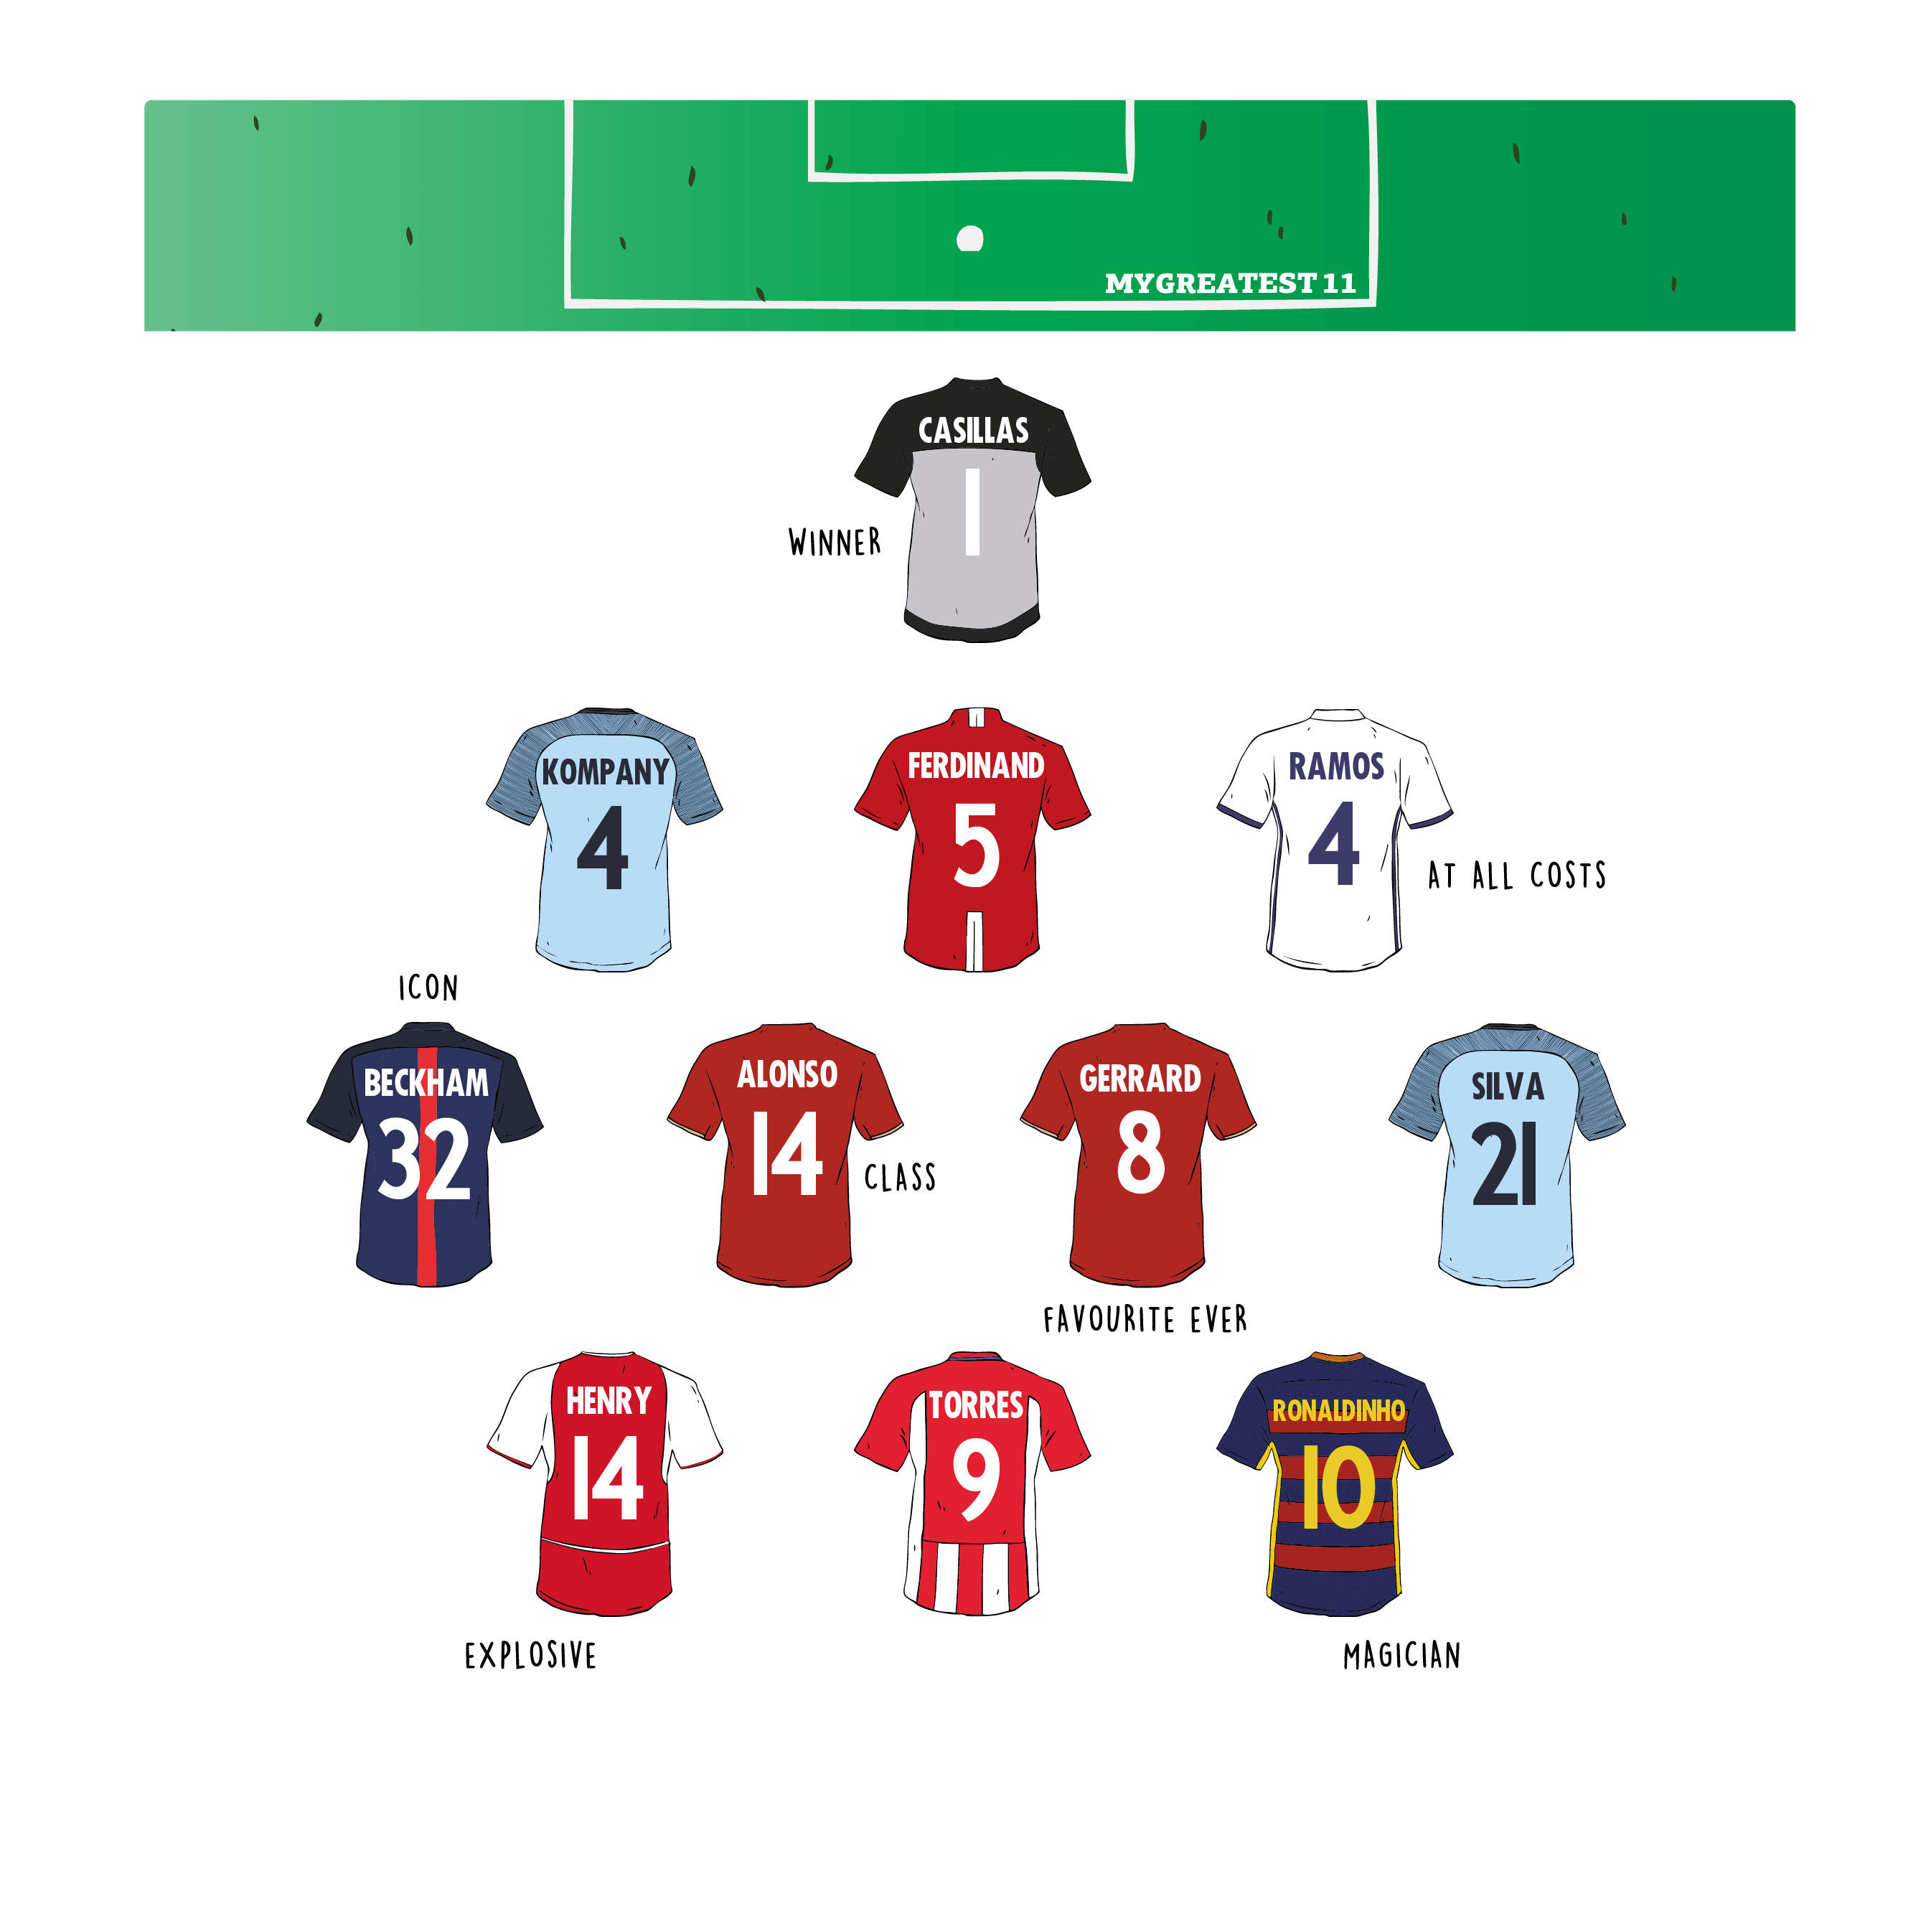 My Greatest 11 Create Your Greatest 11 Retro Football Shirts Retro Football Football Formations